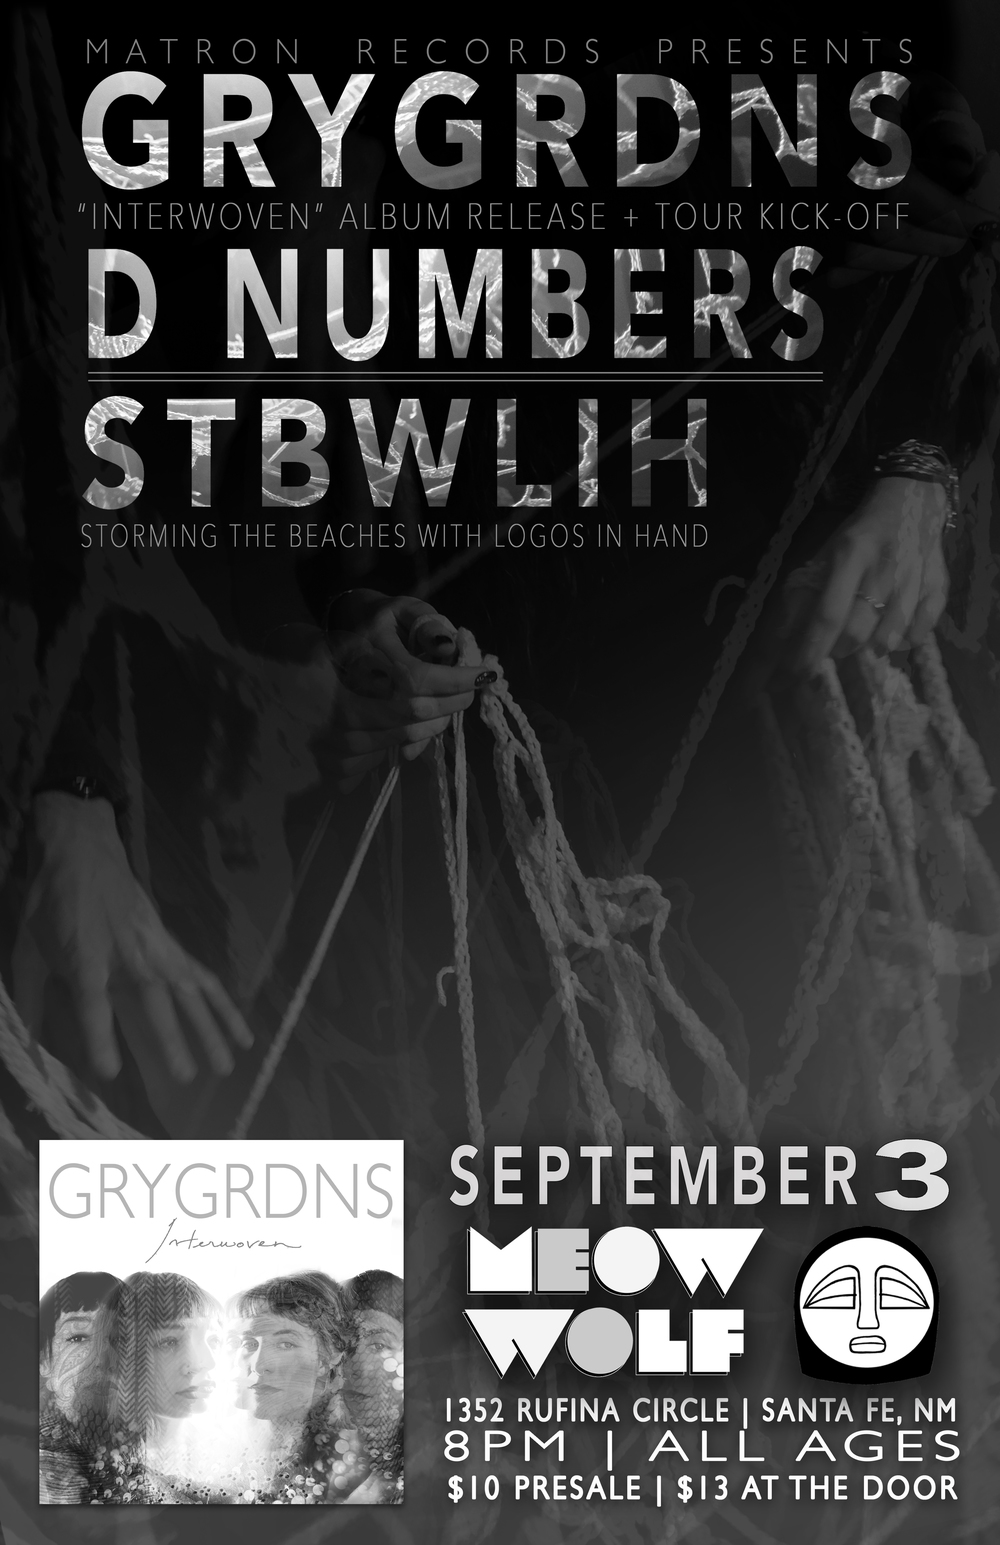 "Matron Records presents the album release show for GRYGRDNS debut album ""Interwoven"" w/ D Numbers & Storming The Beaches With Logos In Hand at Meow Wolf on Saturday, September 3rd. As GRYGRDNS' debut full length as well as Matron Record's first album release, Interwoven is comprised of 10 tracks that are each named for different textiles. This tactile metaphor help convey the wide range of textures and colors present throughout the record as the contrasting but complementary voices of Miranda Scott and Eliza Lutz weave an intricate web around the listener. Providing the strong rhythmic backbone is Luke Carr on drums, Rob Lundberg on upright bass and Cyrus Campbell on electric bass, giving each track its power as they explore themes of human connection both in love and in loss. The release show marks the start of a west coast tour for GRYGRDNS alongside Storming The Beaches With Logos In Hand which will take the crew through Arizona, California, Nevada and Colorado for 10 dates. D NUMBERS http://dnumbers.com/ STORMING THE BEACHES WITH LOGOS IN HAND http://www.stormingthebeacheswithlogosinhand.com/ 8PM Doors // $10 Advance // $13 At The Door For tickets visit: https://meowwolf.com/events/"